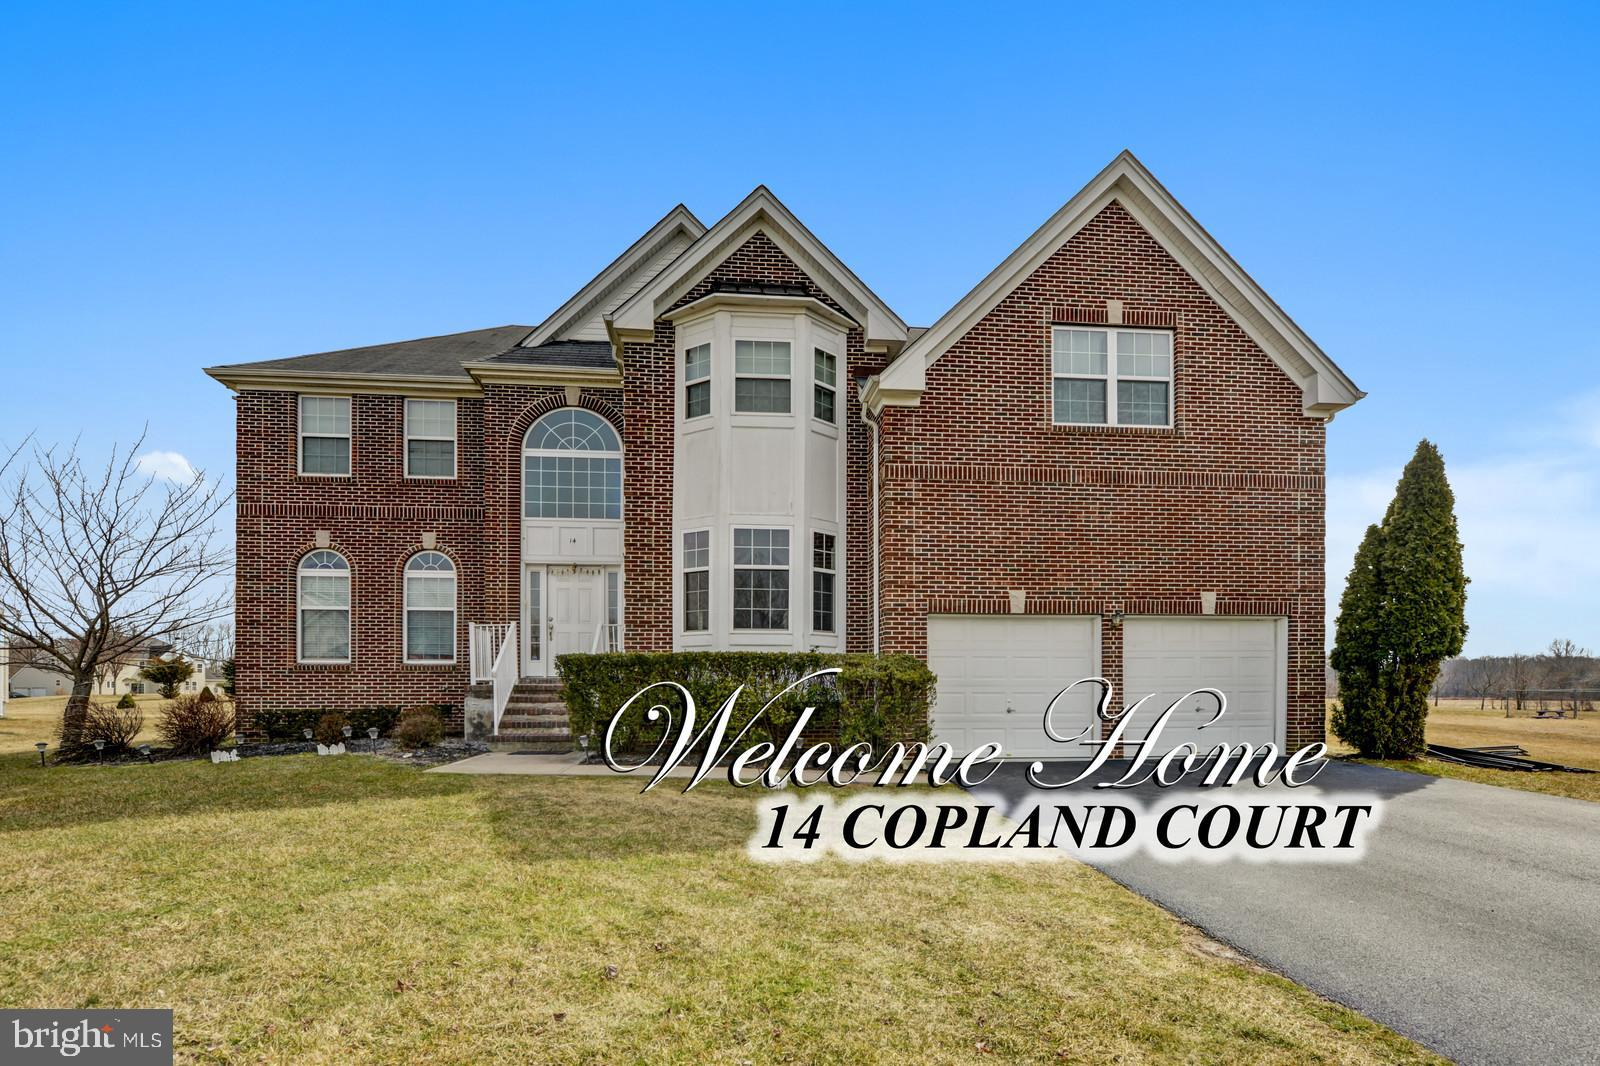 14 COPLAND COURT, EAST WINDSOR, NJ 08520